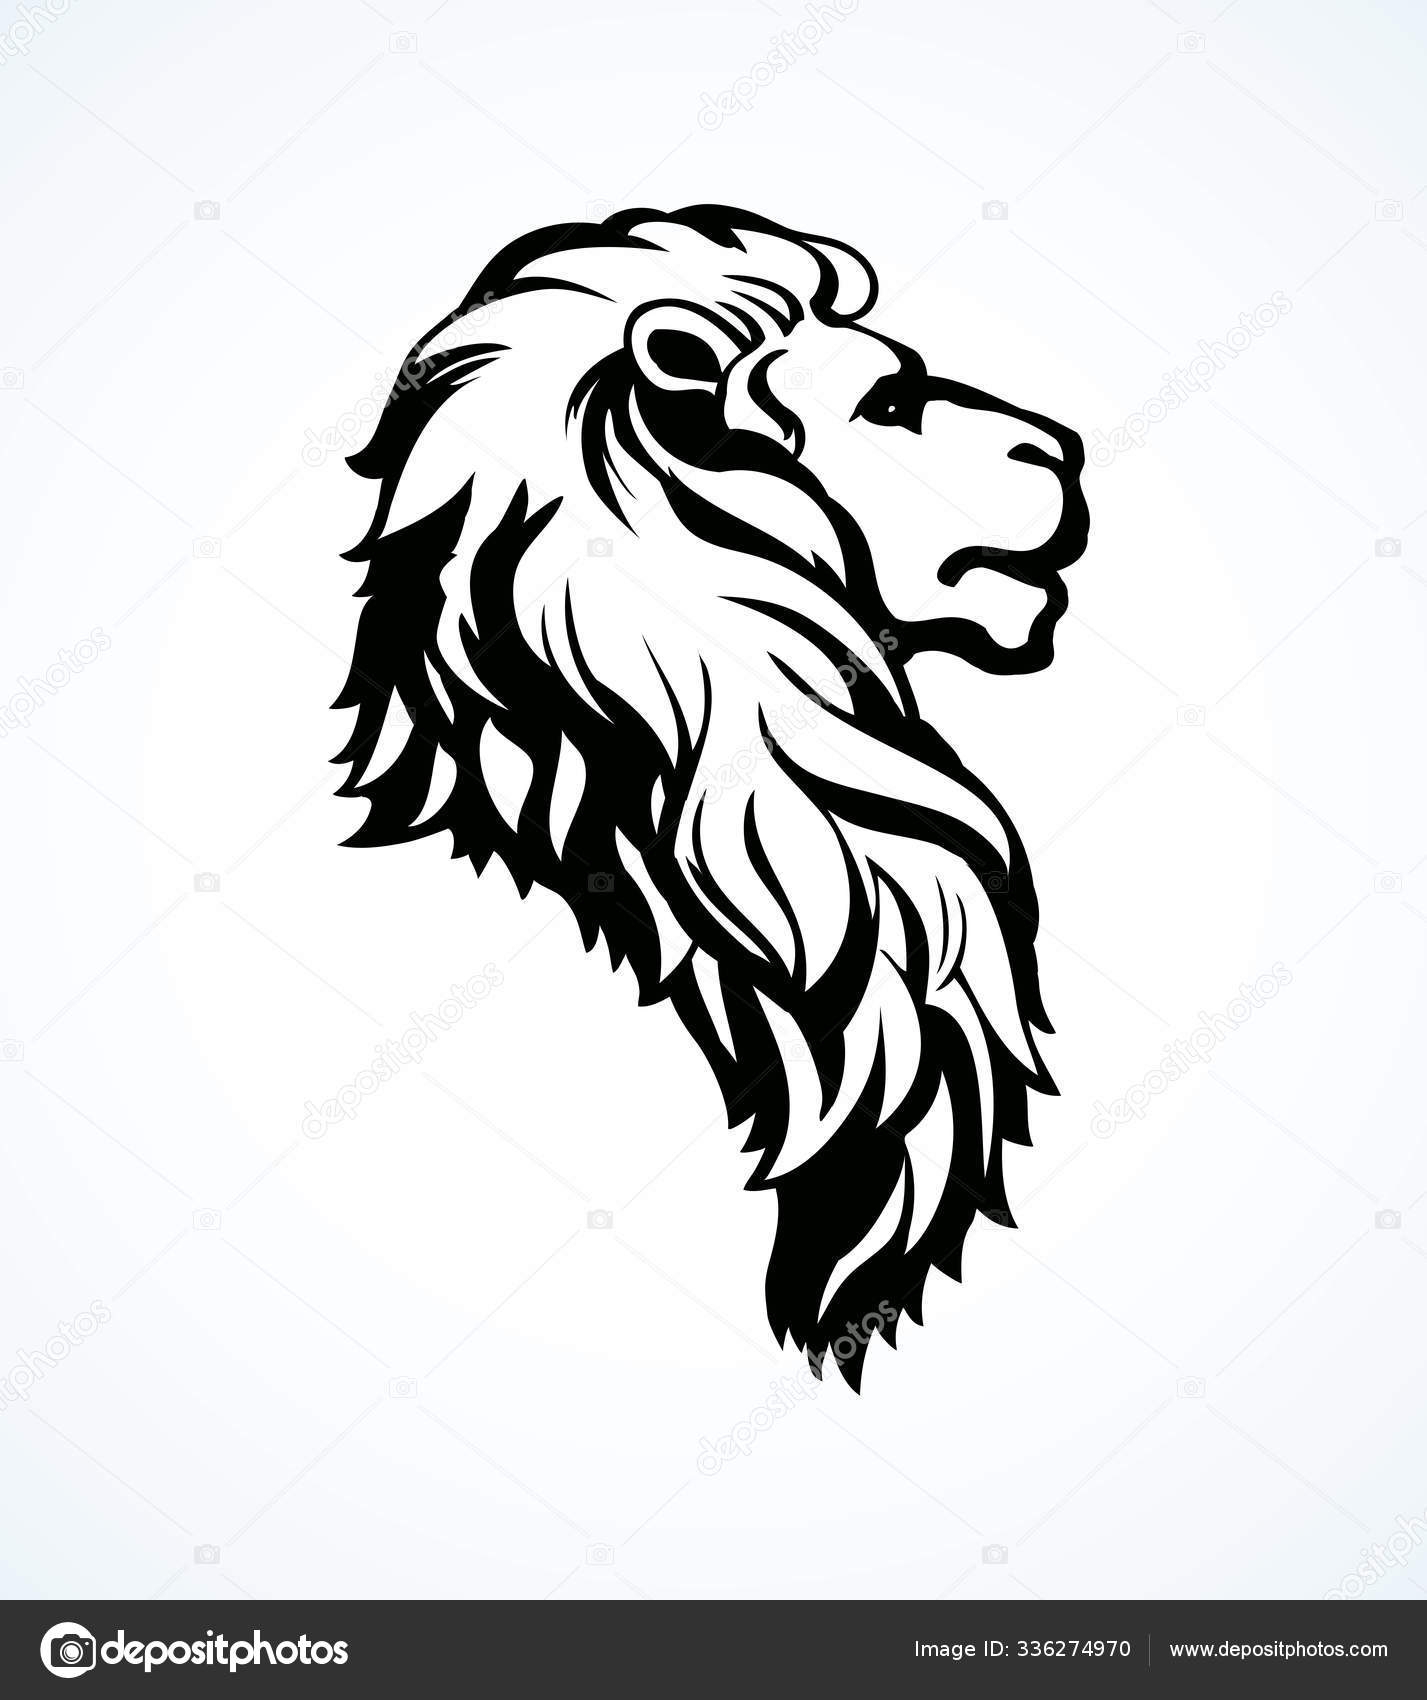 Lion Vector Drawing Stock Vector C Marinka 336274970 Detroit's first playoff game in the super bowl era came. depositphotos